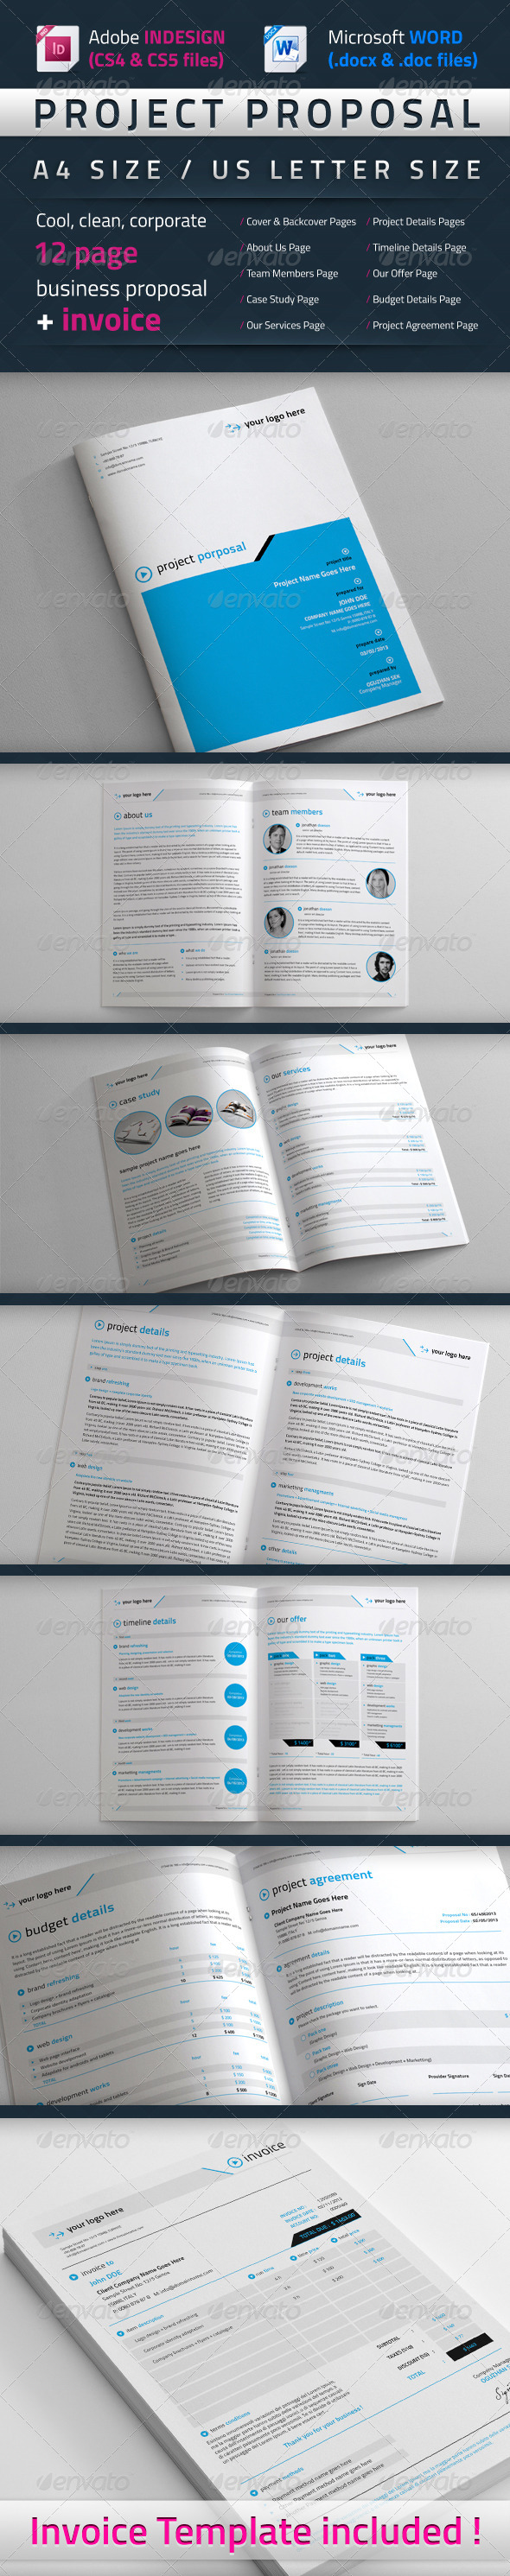 GraphicRiver Project Proposal Template 4083184